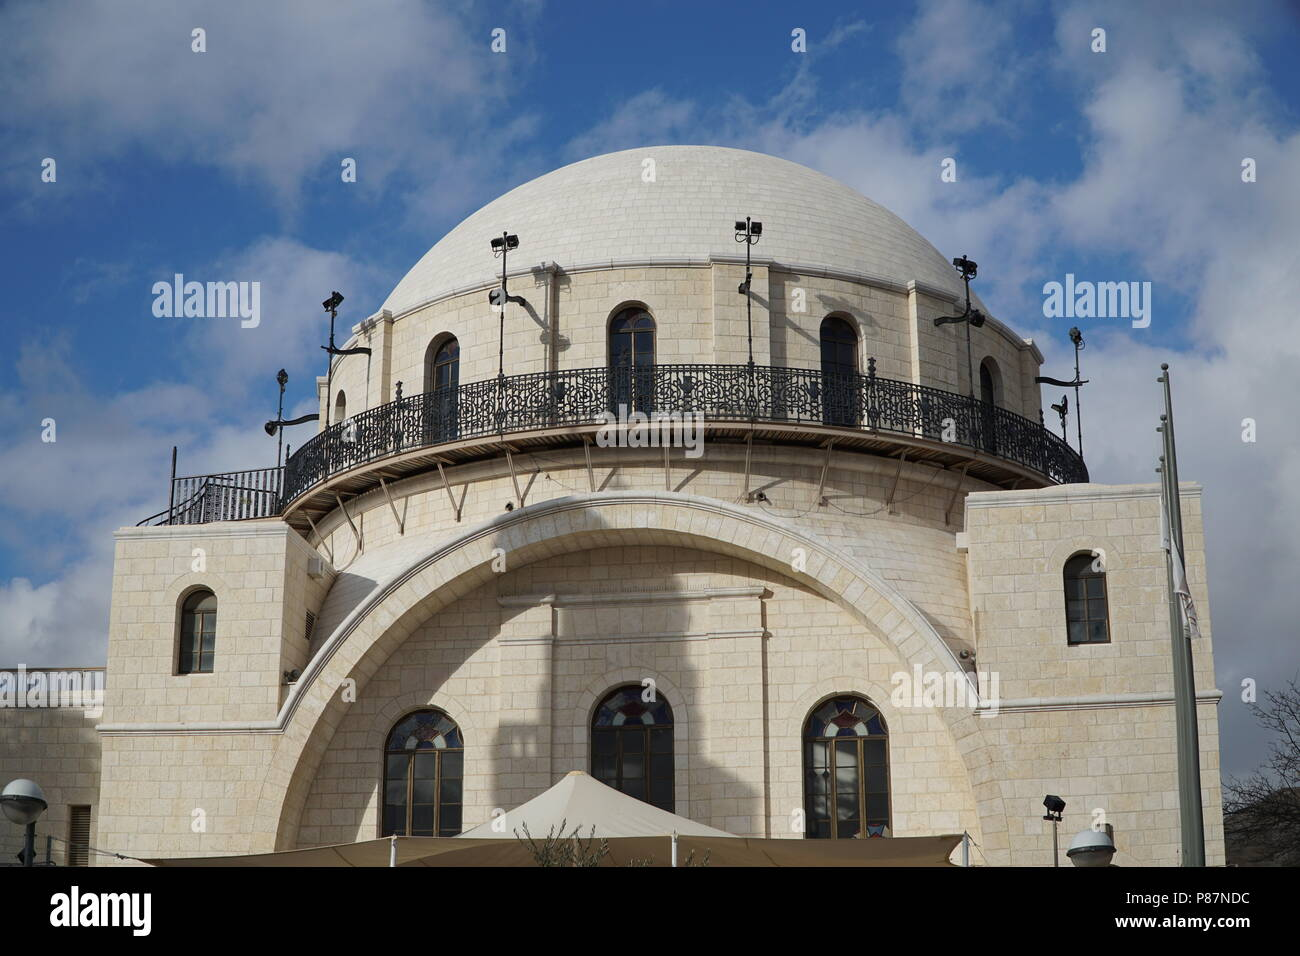 Jerusalem, Hurvah Synagogue with dome shaped roof - Stock Image